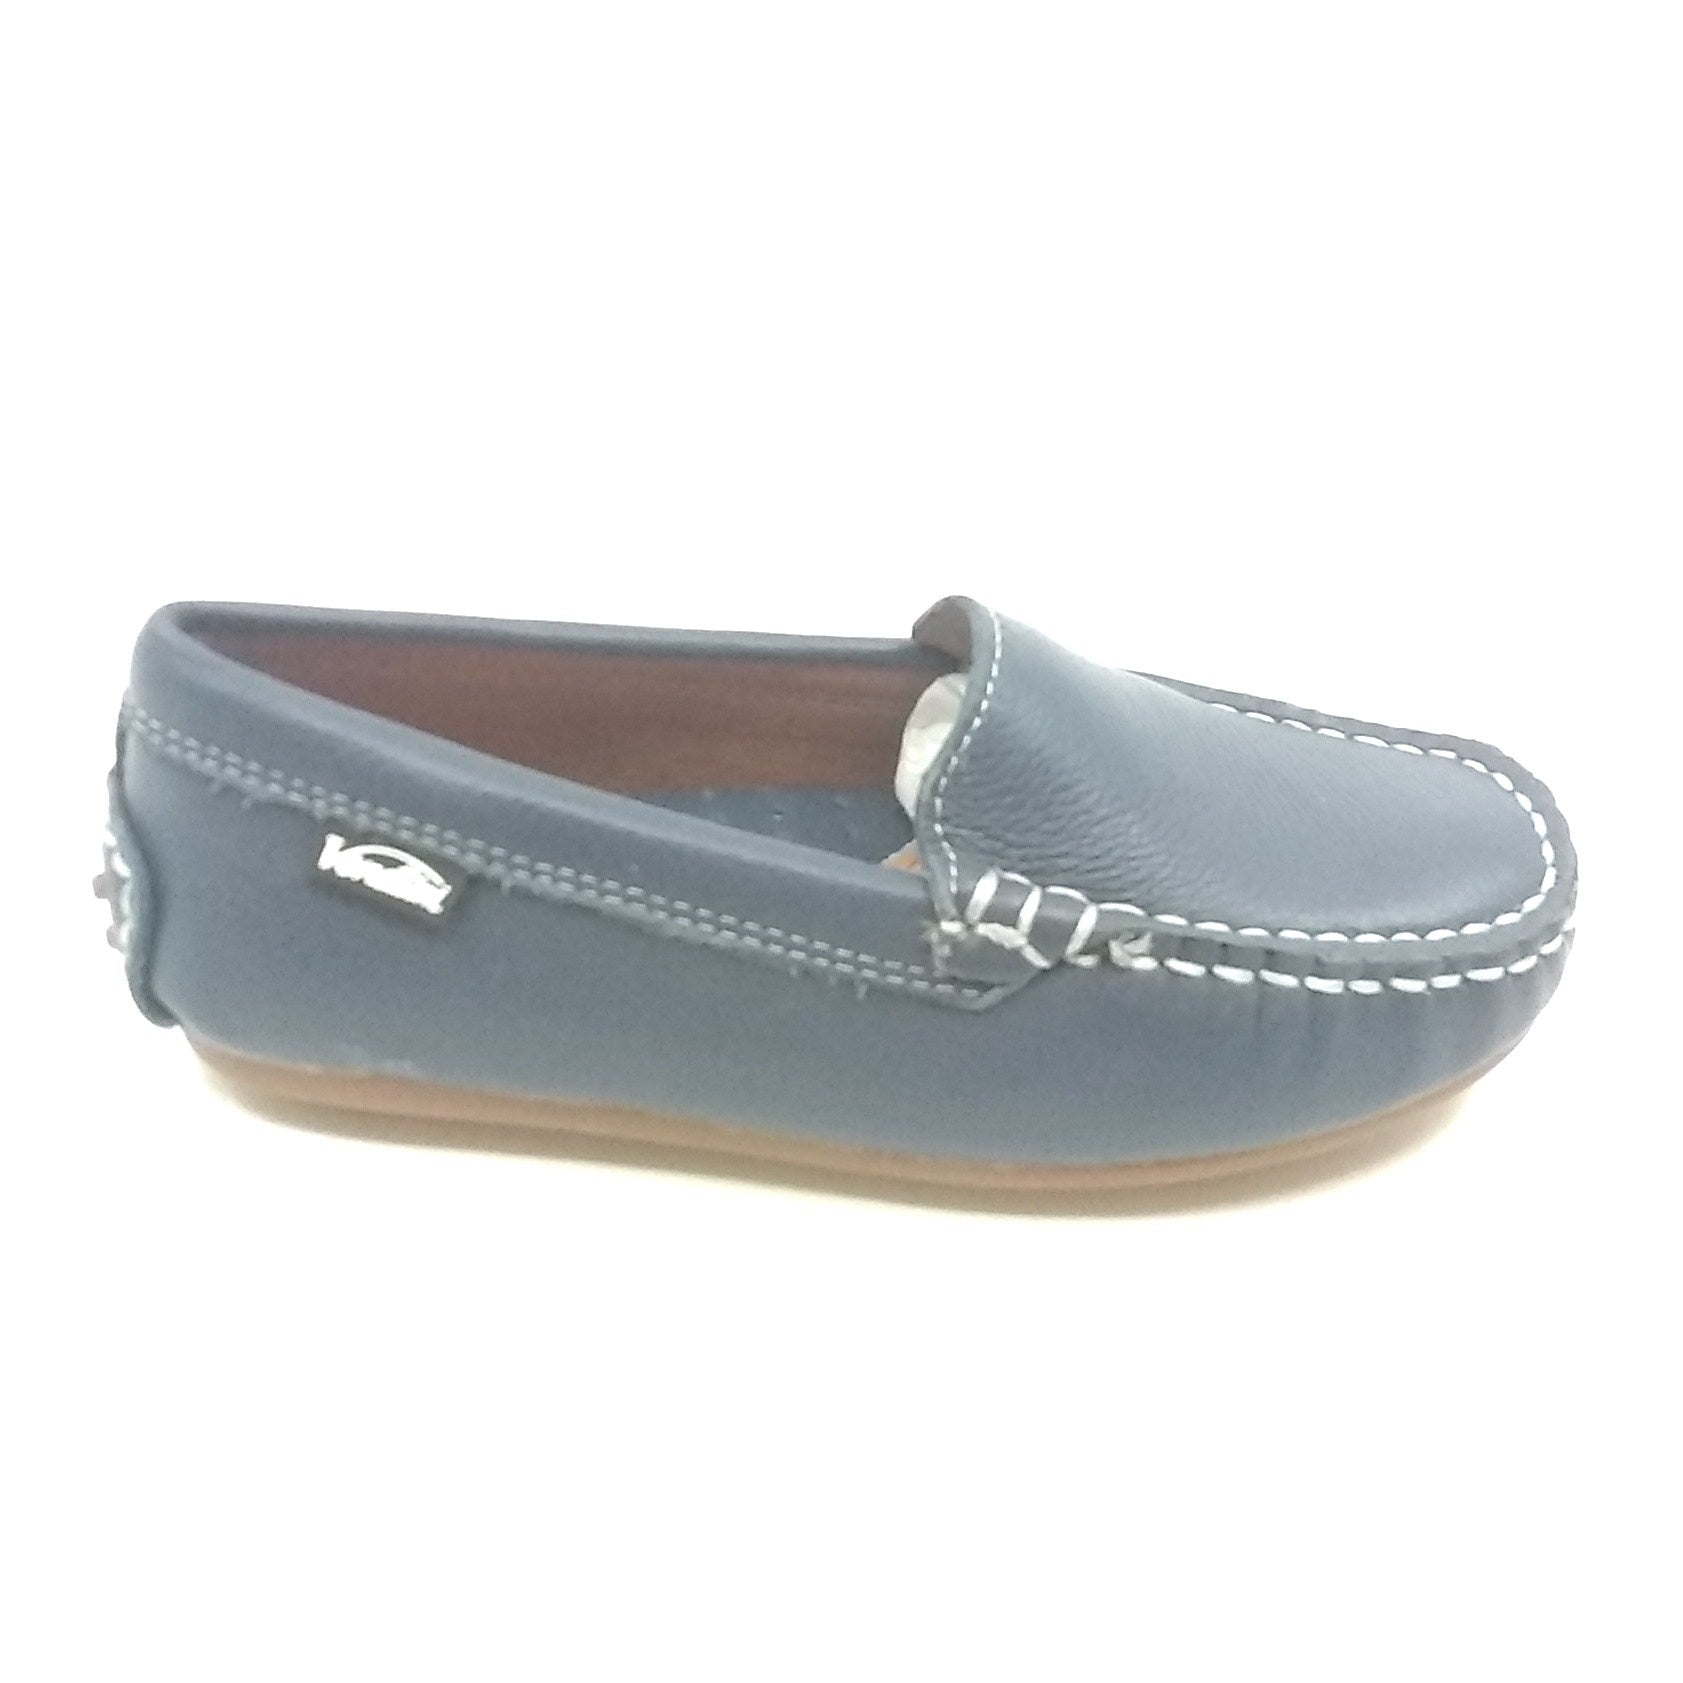 Venettini  Gray Moccasin